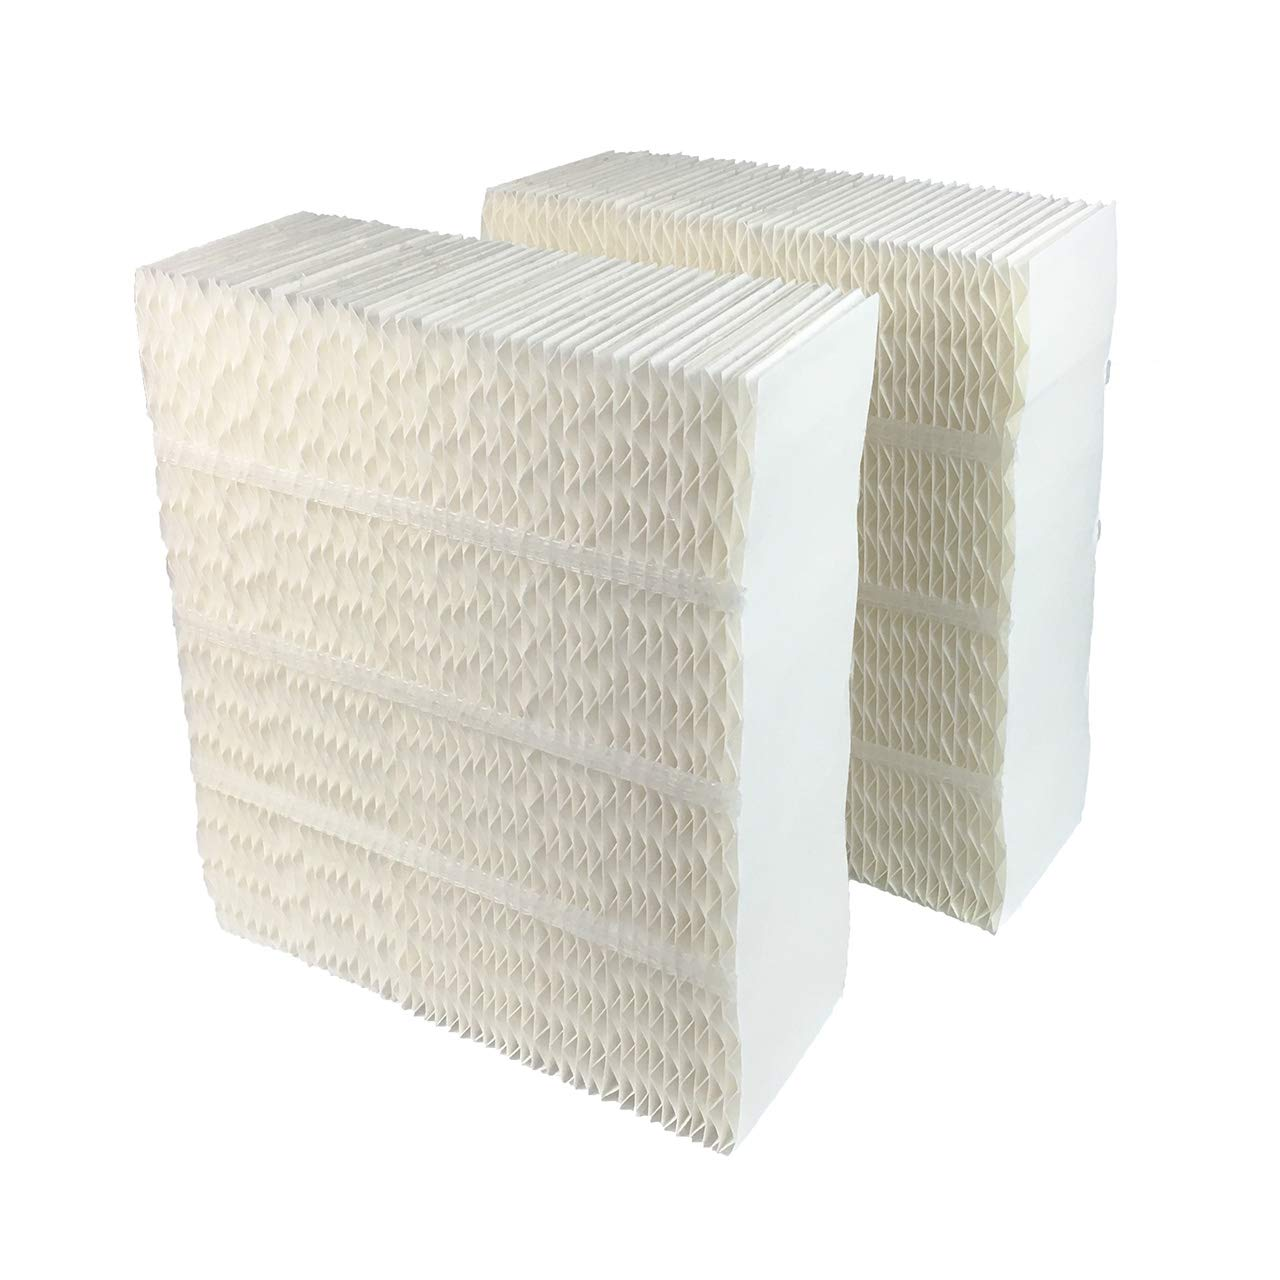 2 Pack Replacement  Humidifier Wick Filters 1043 for Essick Air EP9 EP9R EP9500 EP9700 EP9 800821000 826000 826600 826800 826900 831000 Series Humidifiers by Ximoon